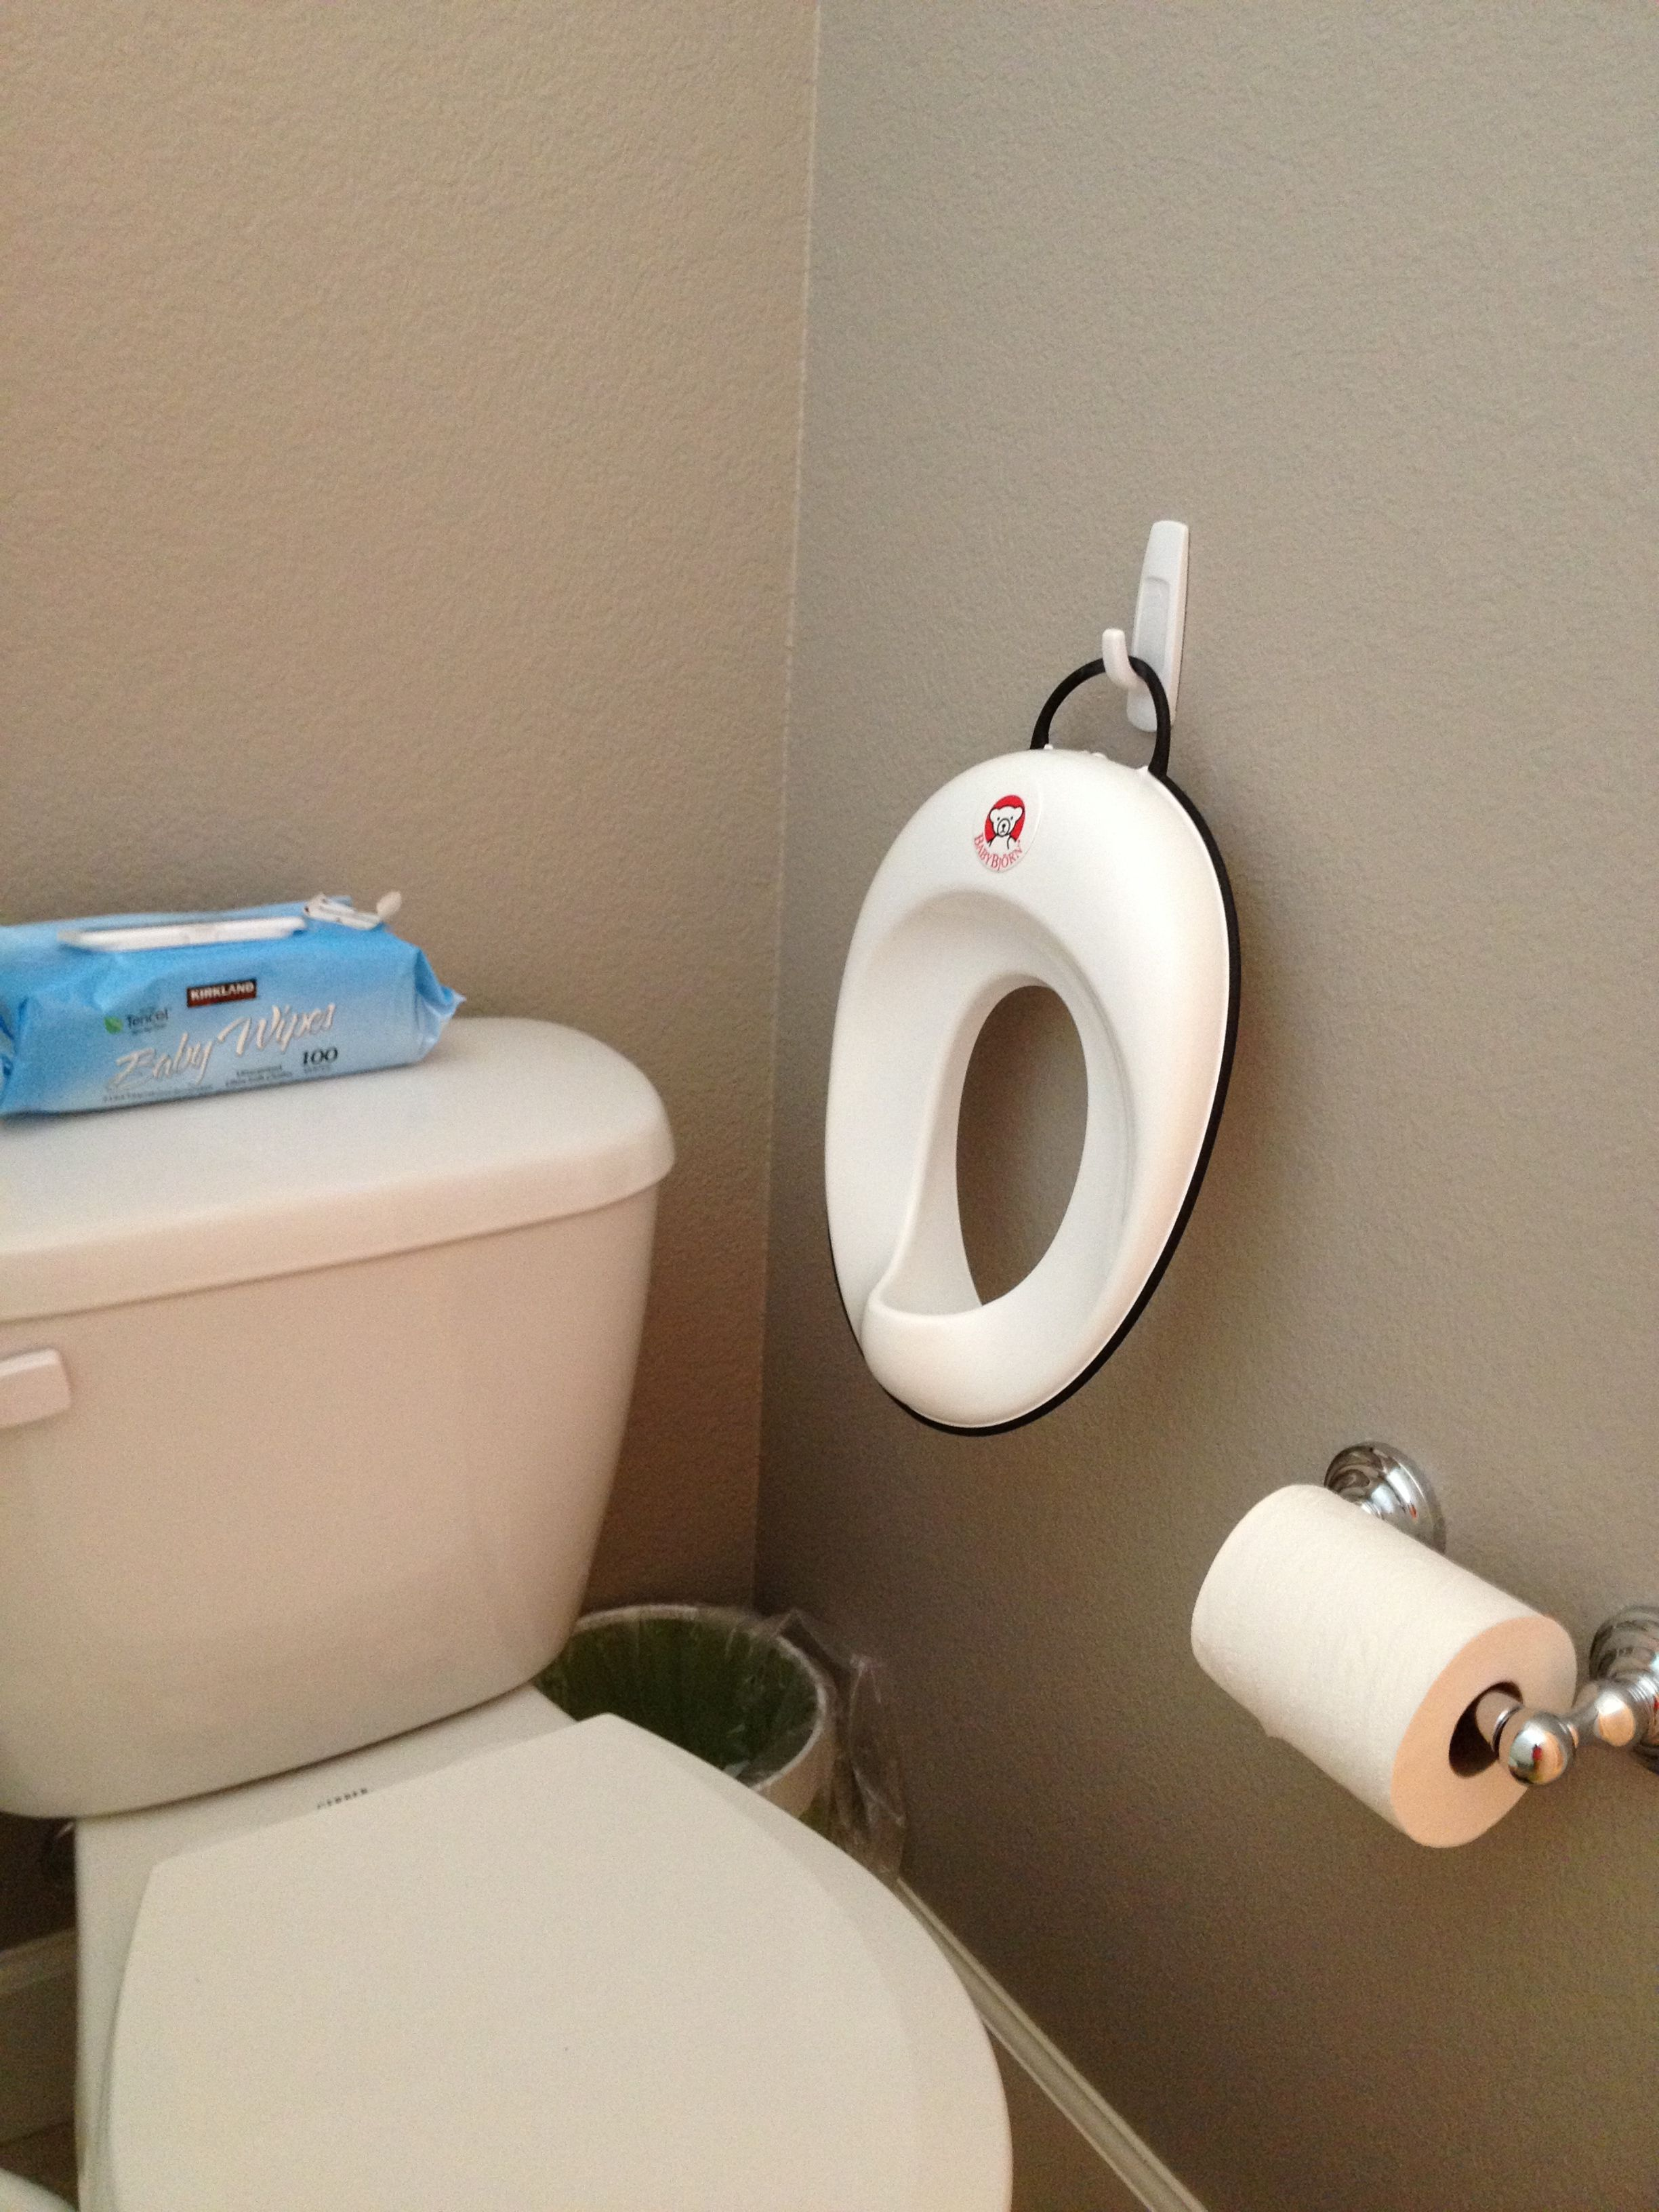 Handy Way To Store The Potty Seat So Others Can Use The